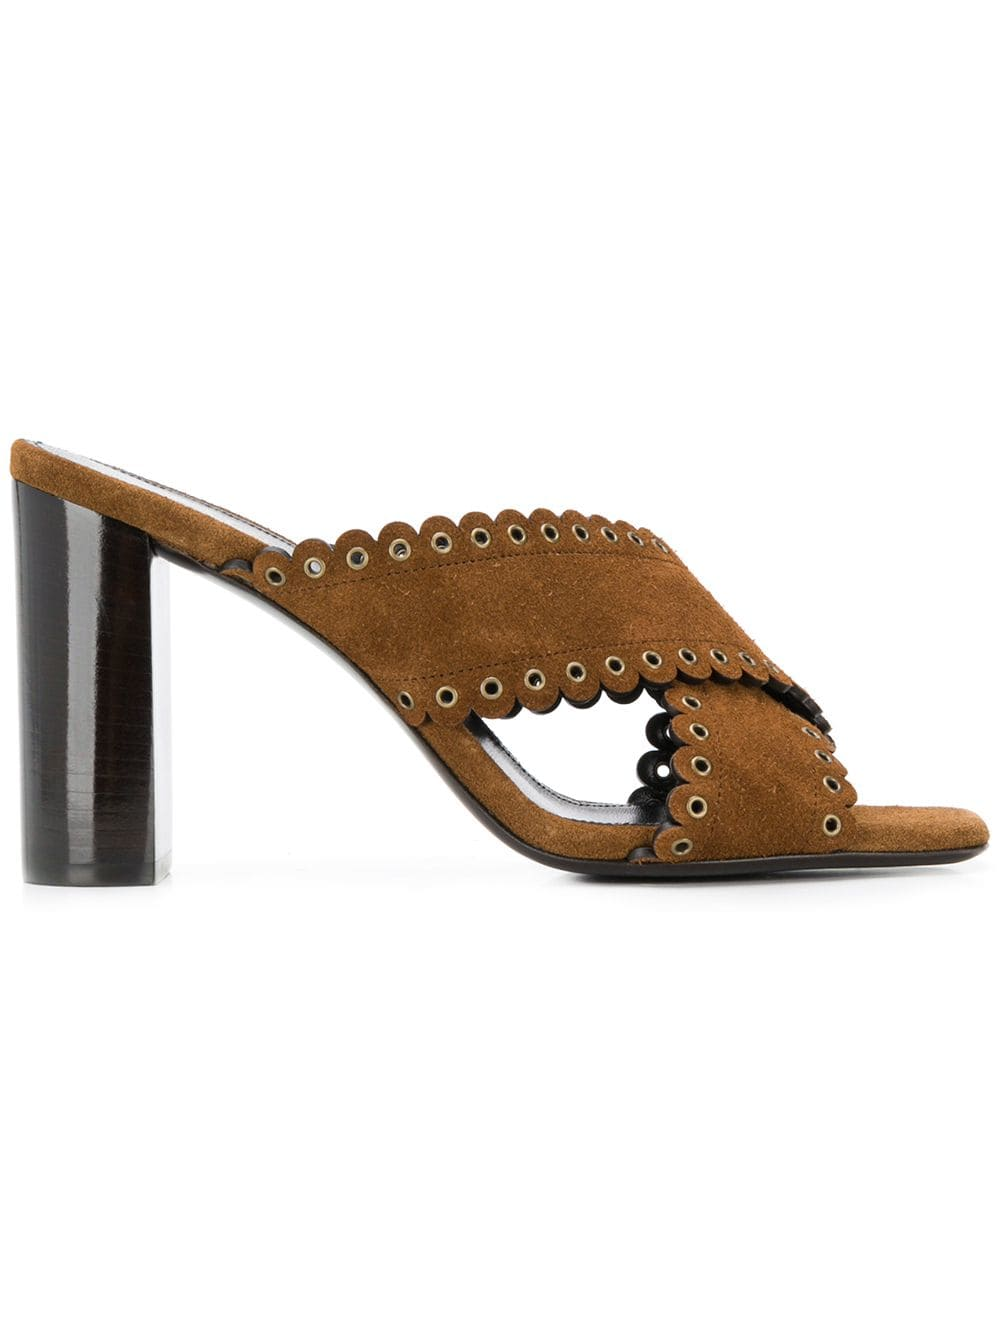 42d11d3b1a38 Brown Loulou Sandals - SAINT LAURENT - Russocapri